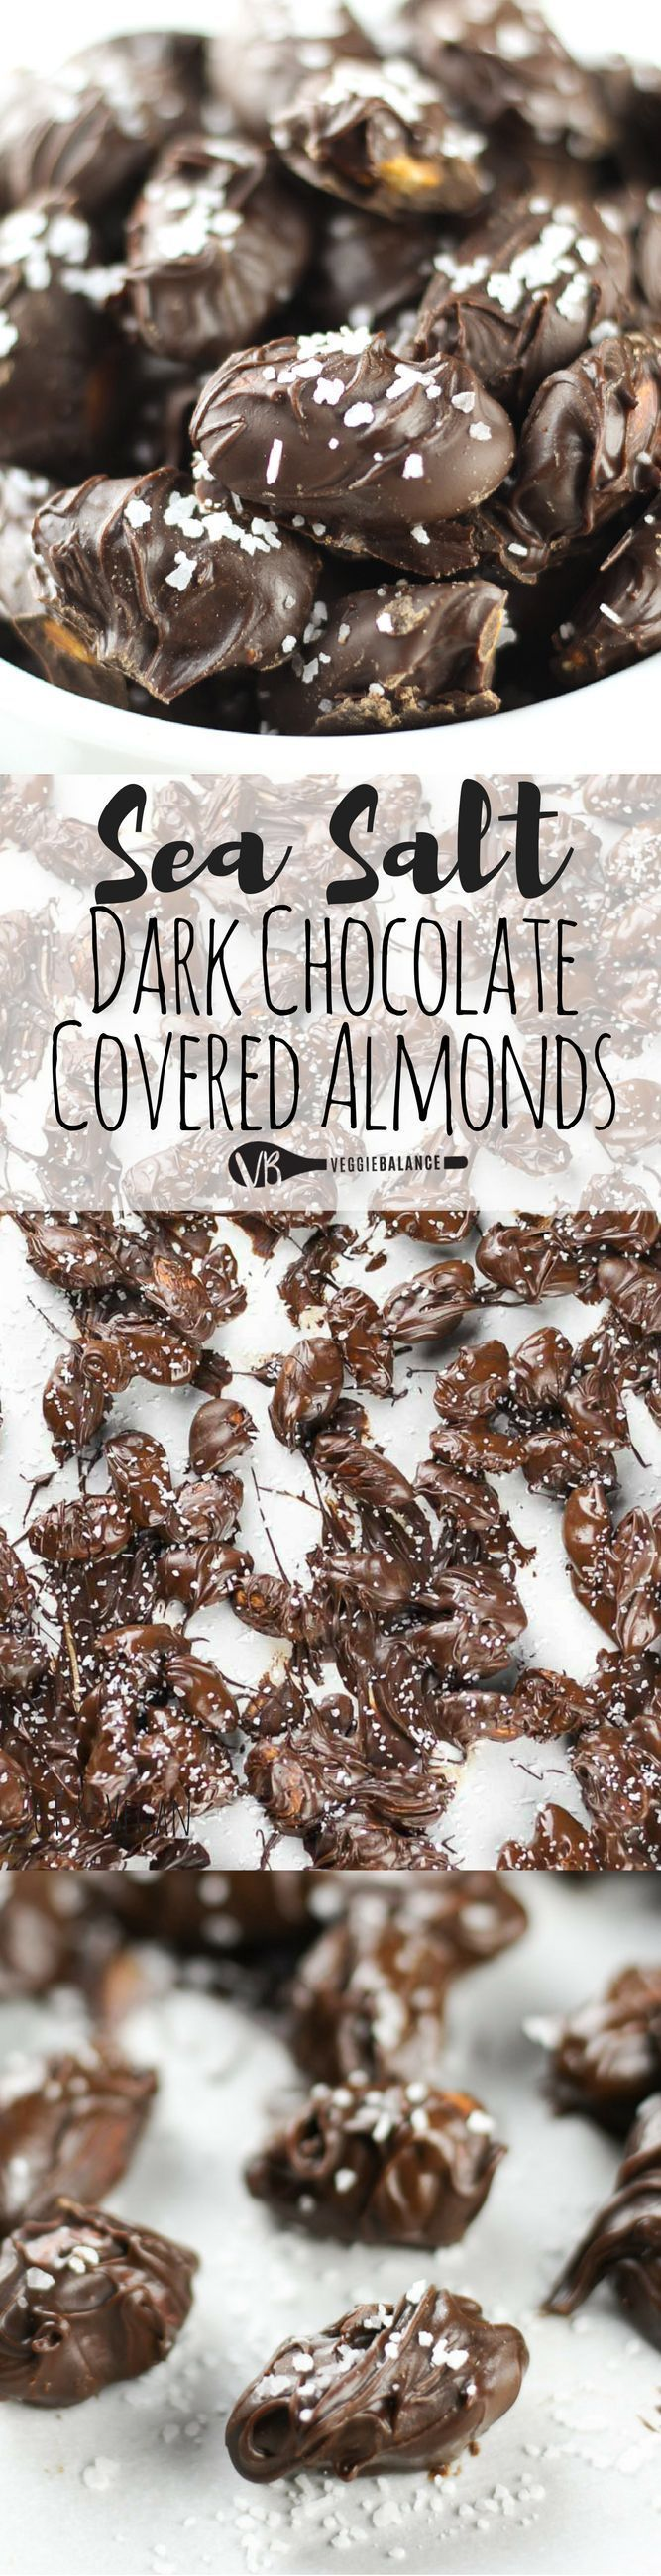 Dark Chocolate Covered Almonds recipe that is so easy to make. We'll show you how to make these easy sea salt chocolate covered almonds with just three-ingredients. Perfect for gift giving or those girl nights sitting around a table with a glass of wine. (Gluten-Free, Dairy-Free & Vegan Friendly)